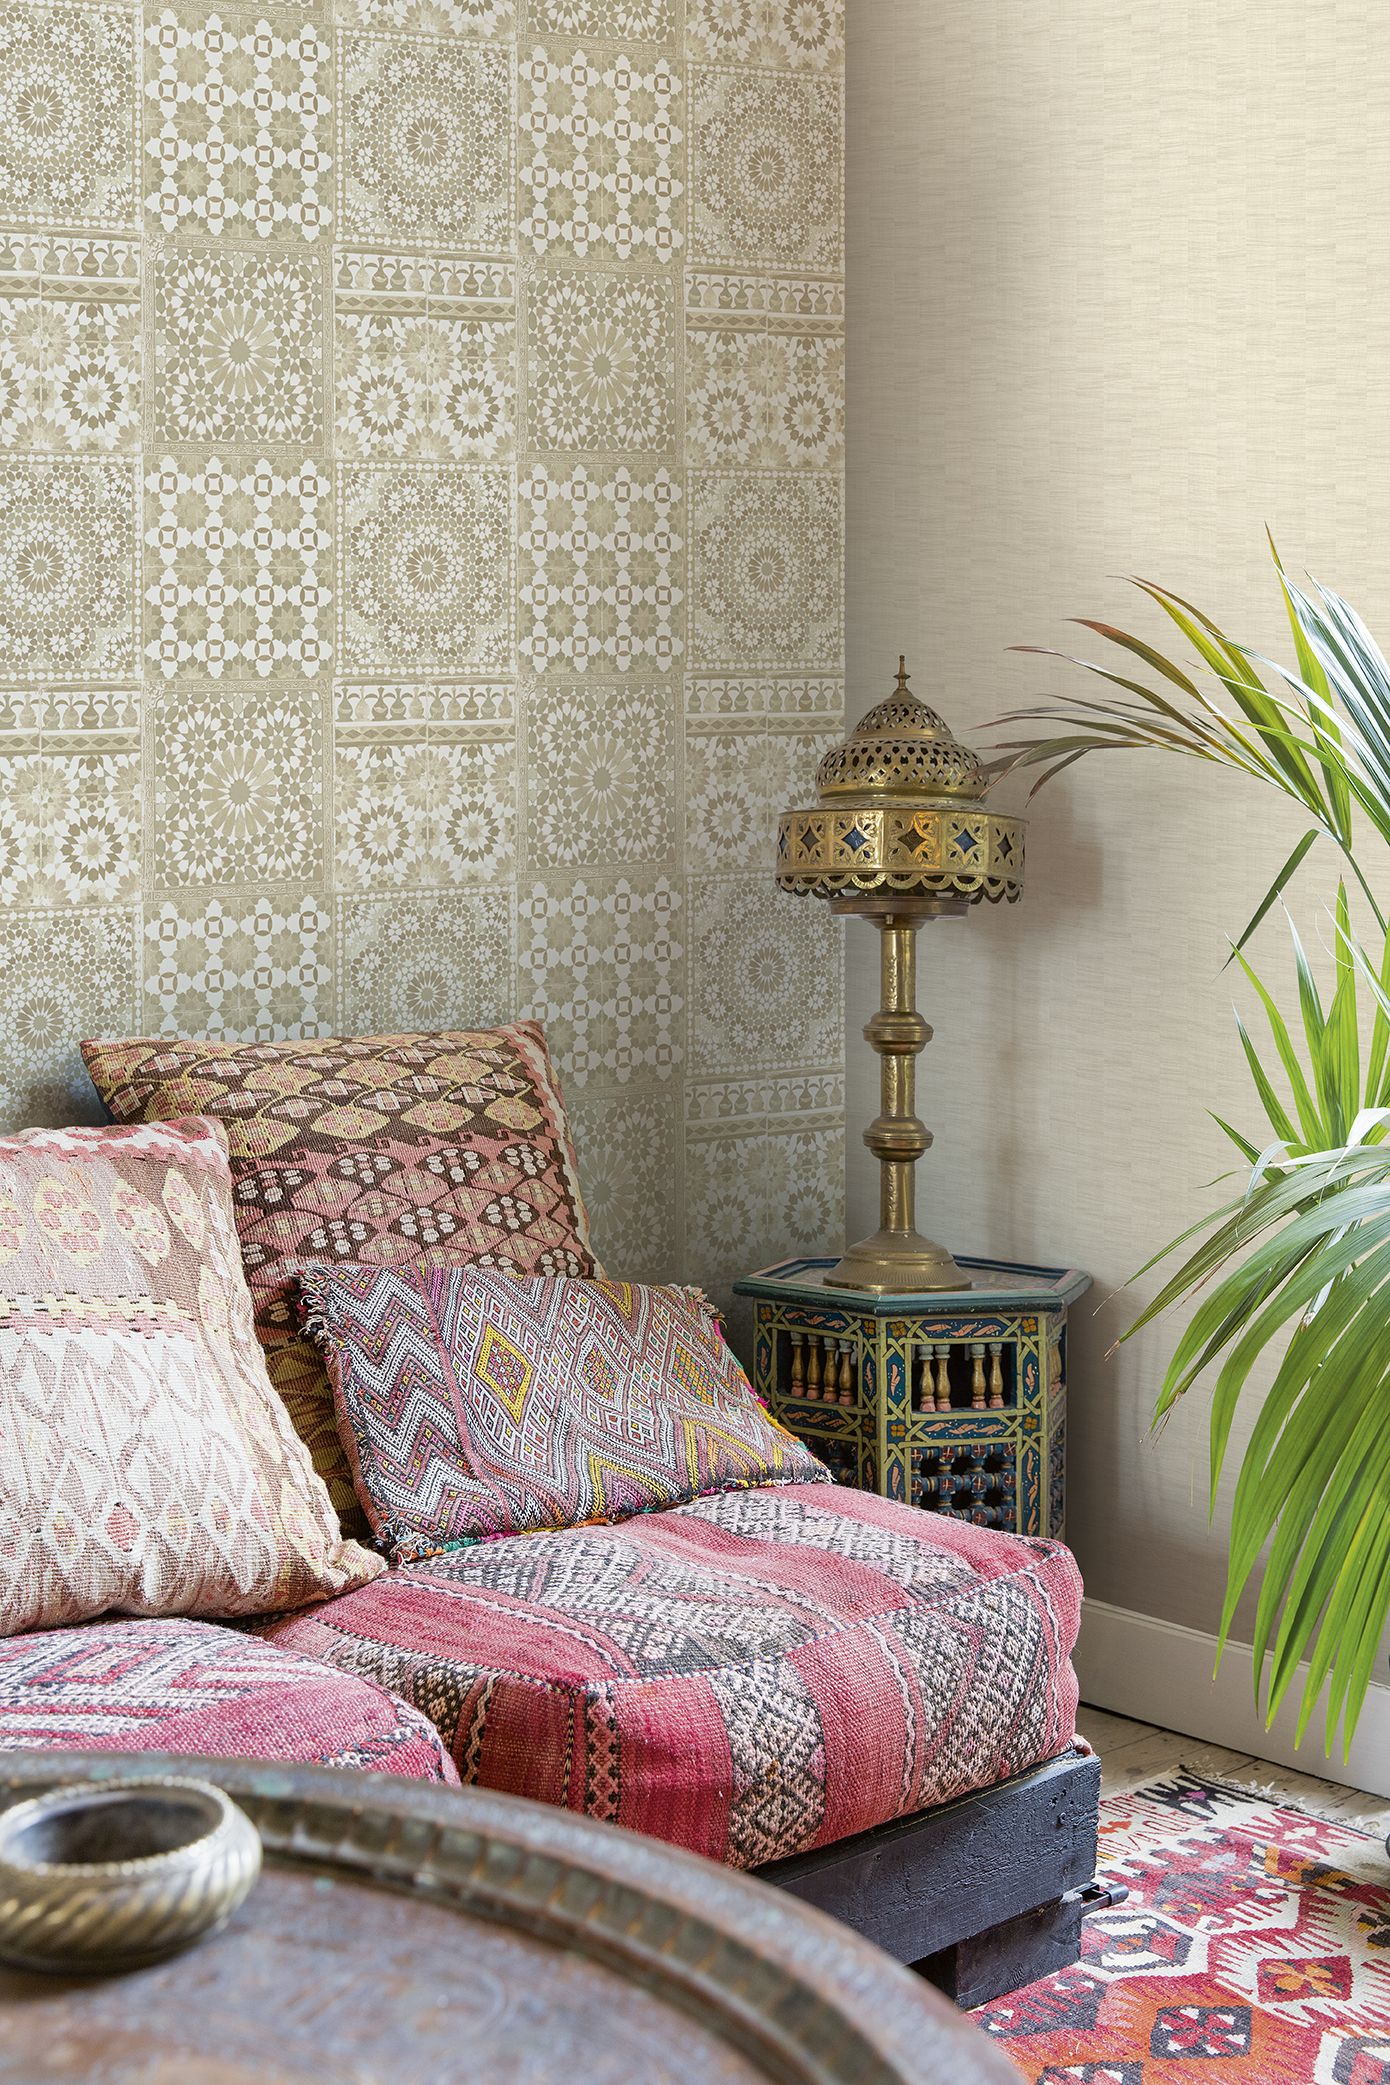 Make your home cosy with a moroccan tile